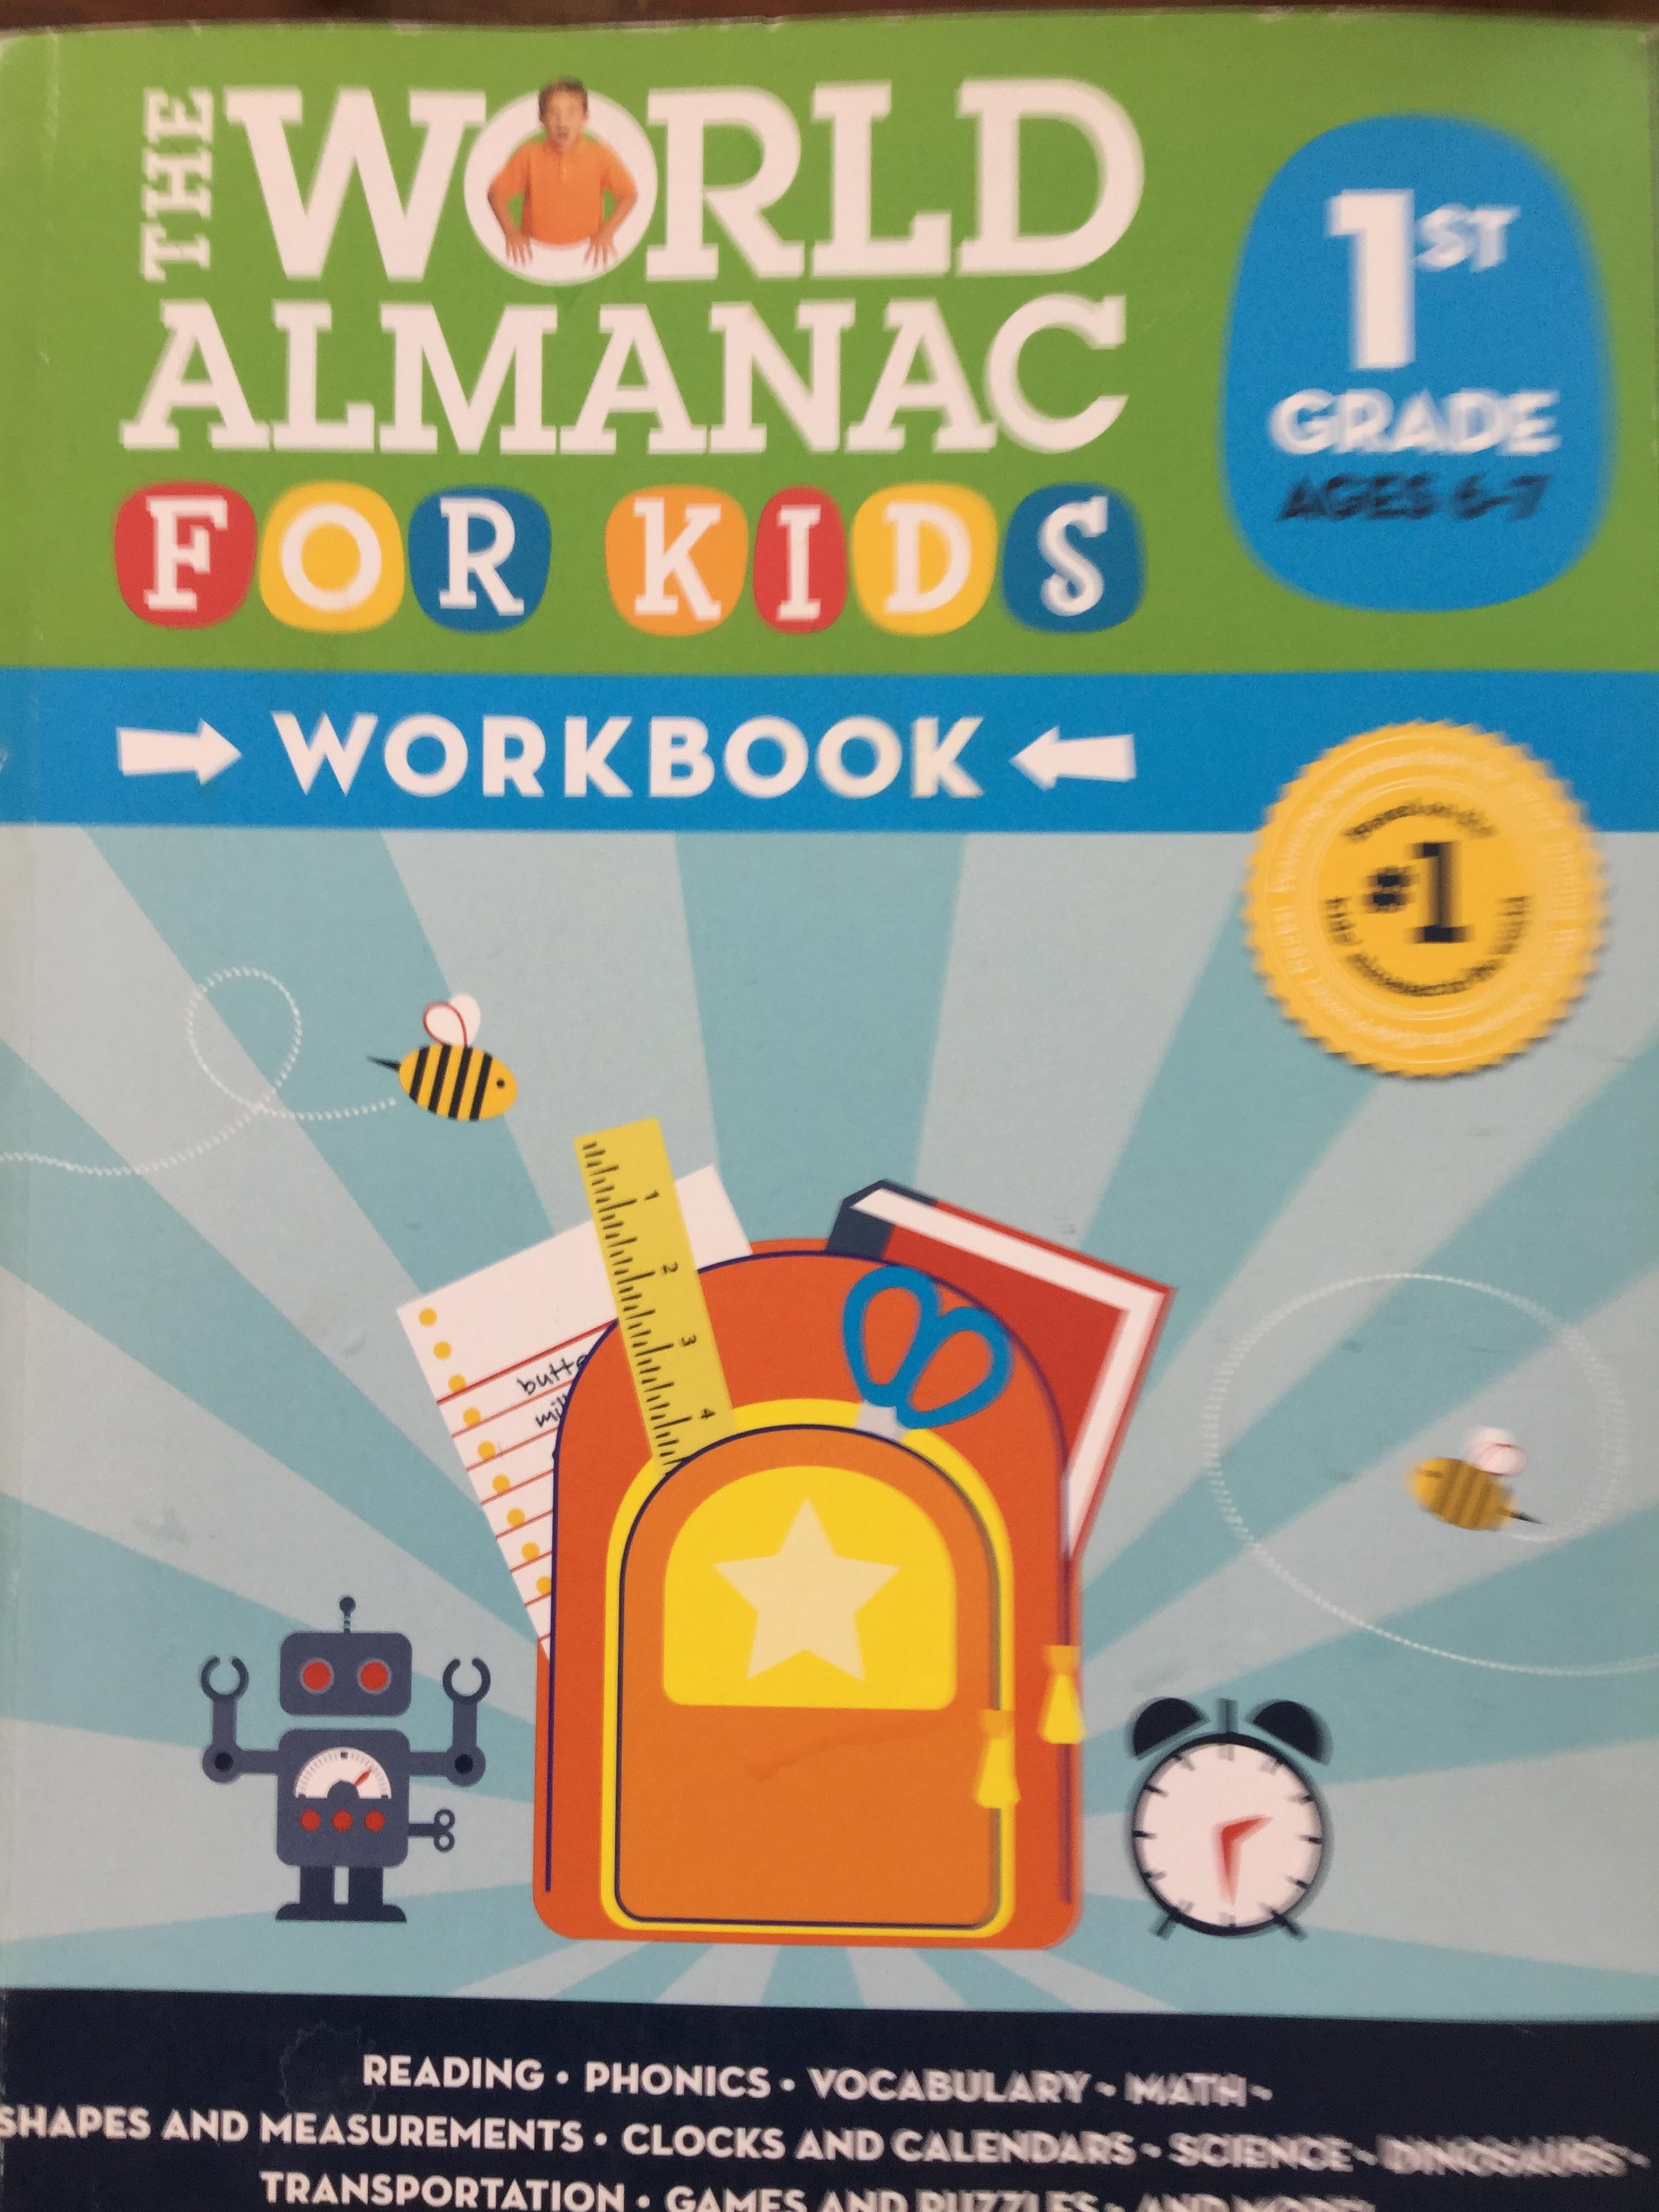 The World ALMANAC for KIDS Workbook. 1st grade ages 6-7